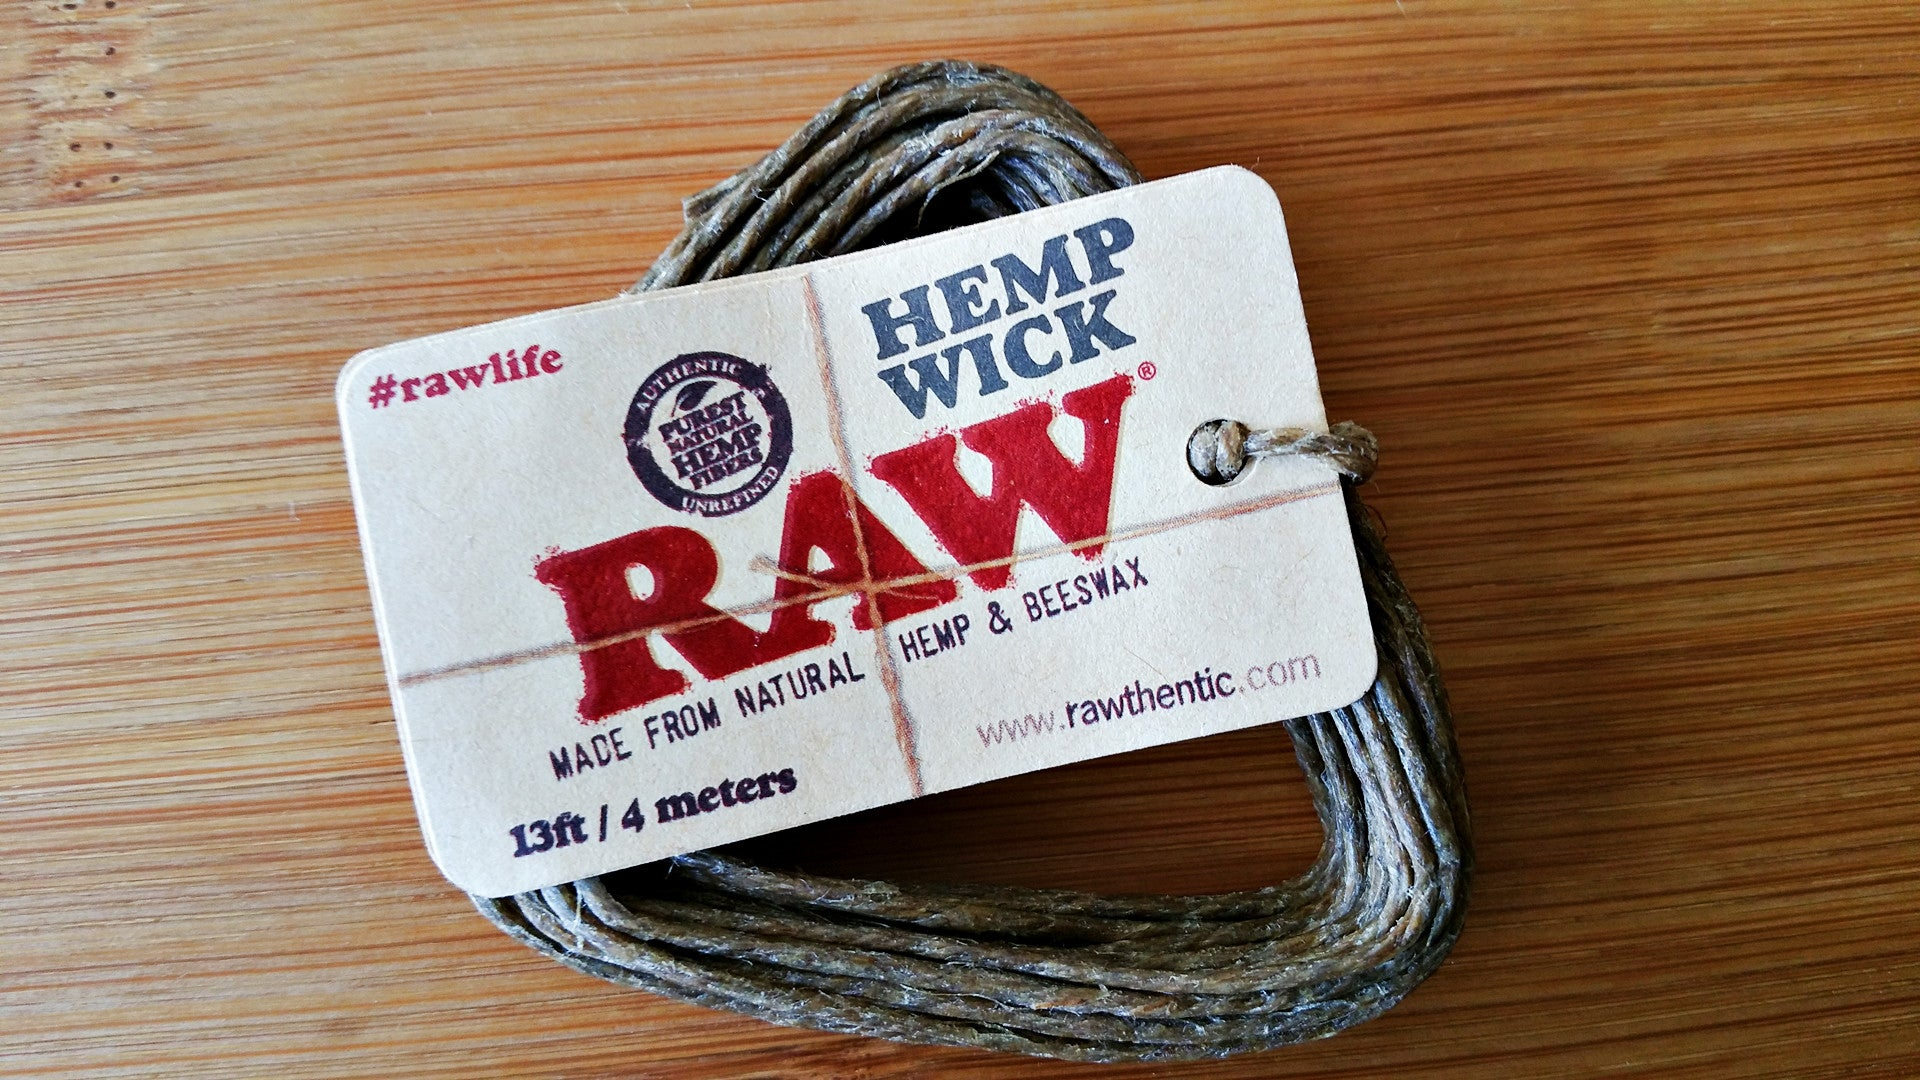 Hemp & Beeswax Wick 13ft / 4 Meter